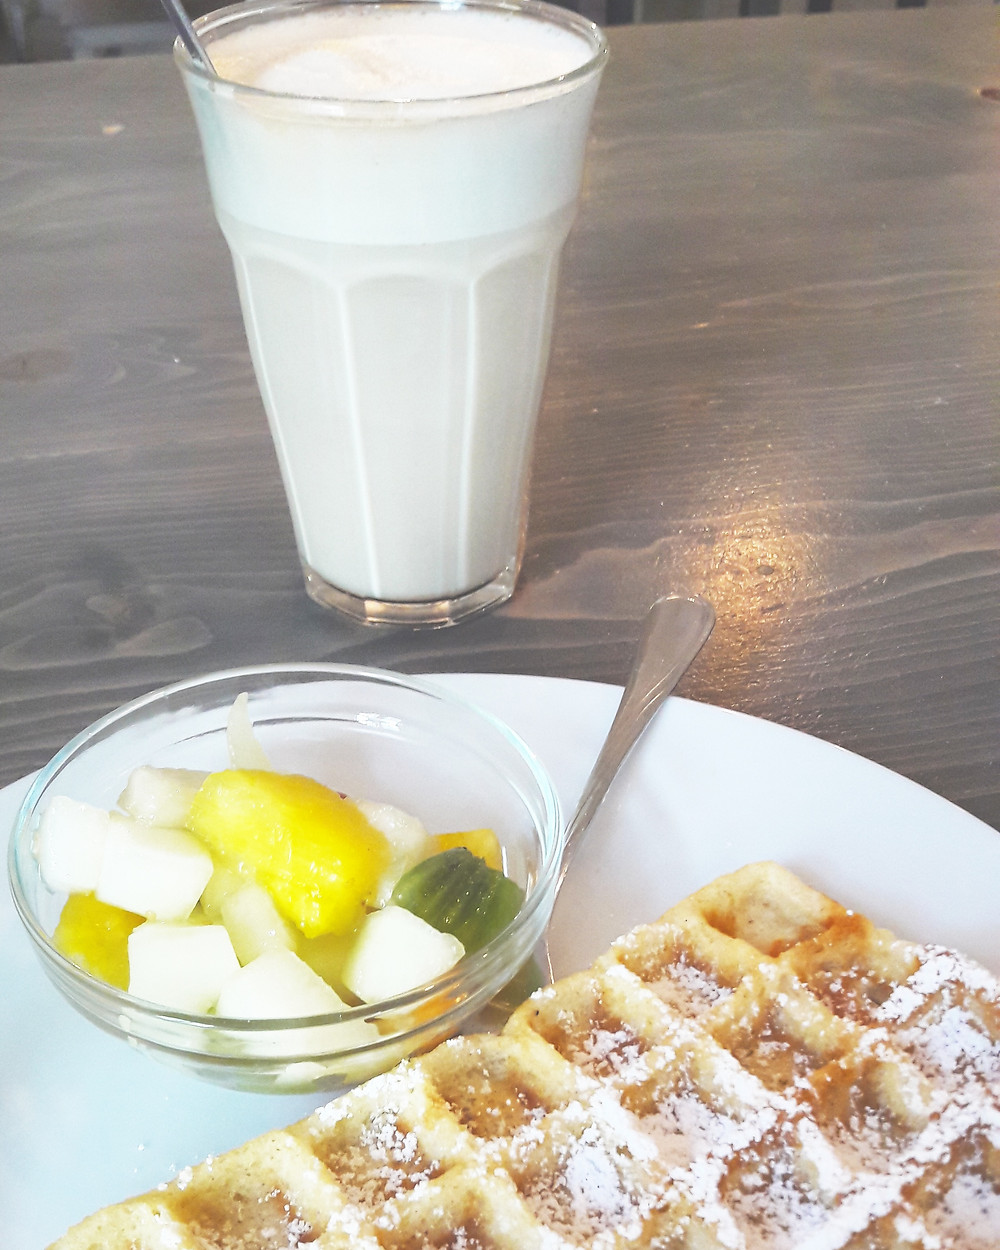 chai latte and waffles with fruit in white rabbit's room cafe munich